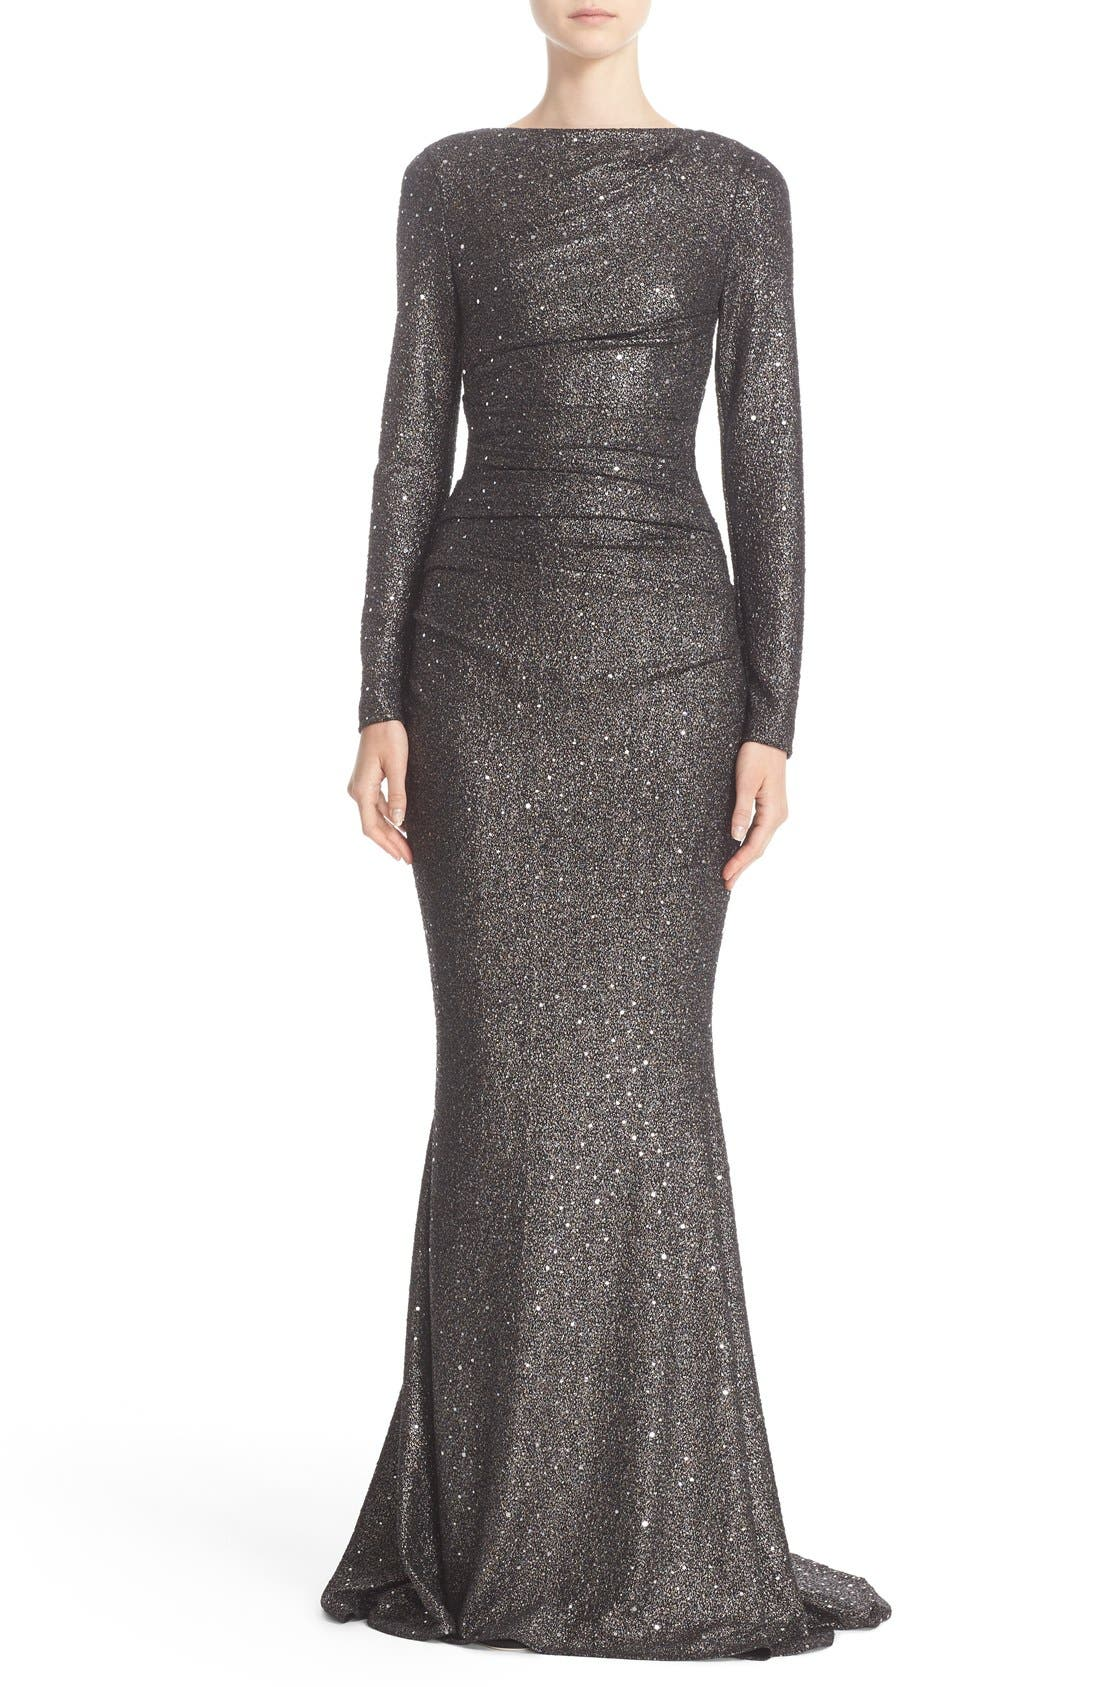 Sequin Glitter Jersey Ruched Gown,                         Main,                         color, Glitter Sequin